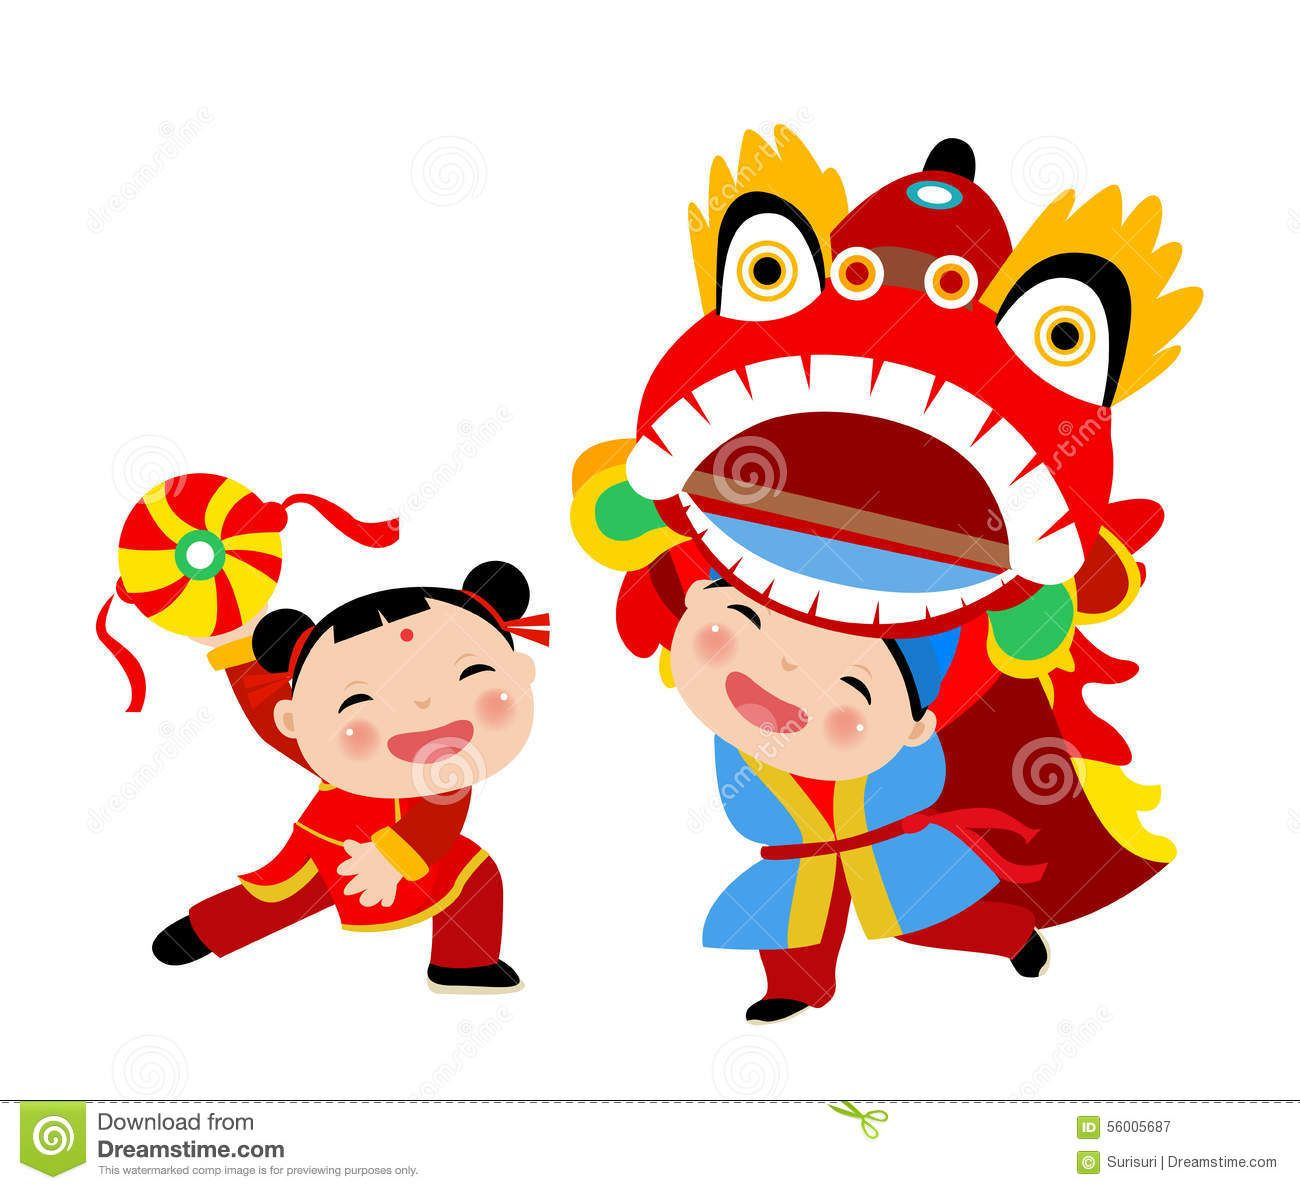 Free chinese new year clipart images. Happy lion dance royalty